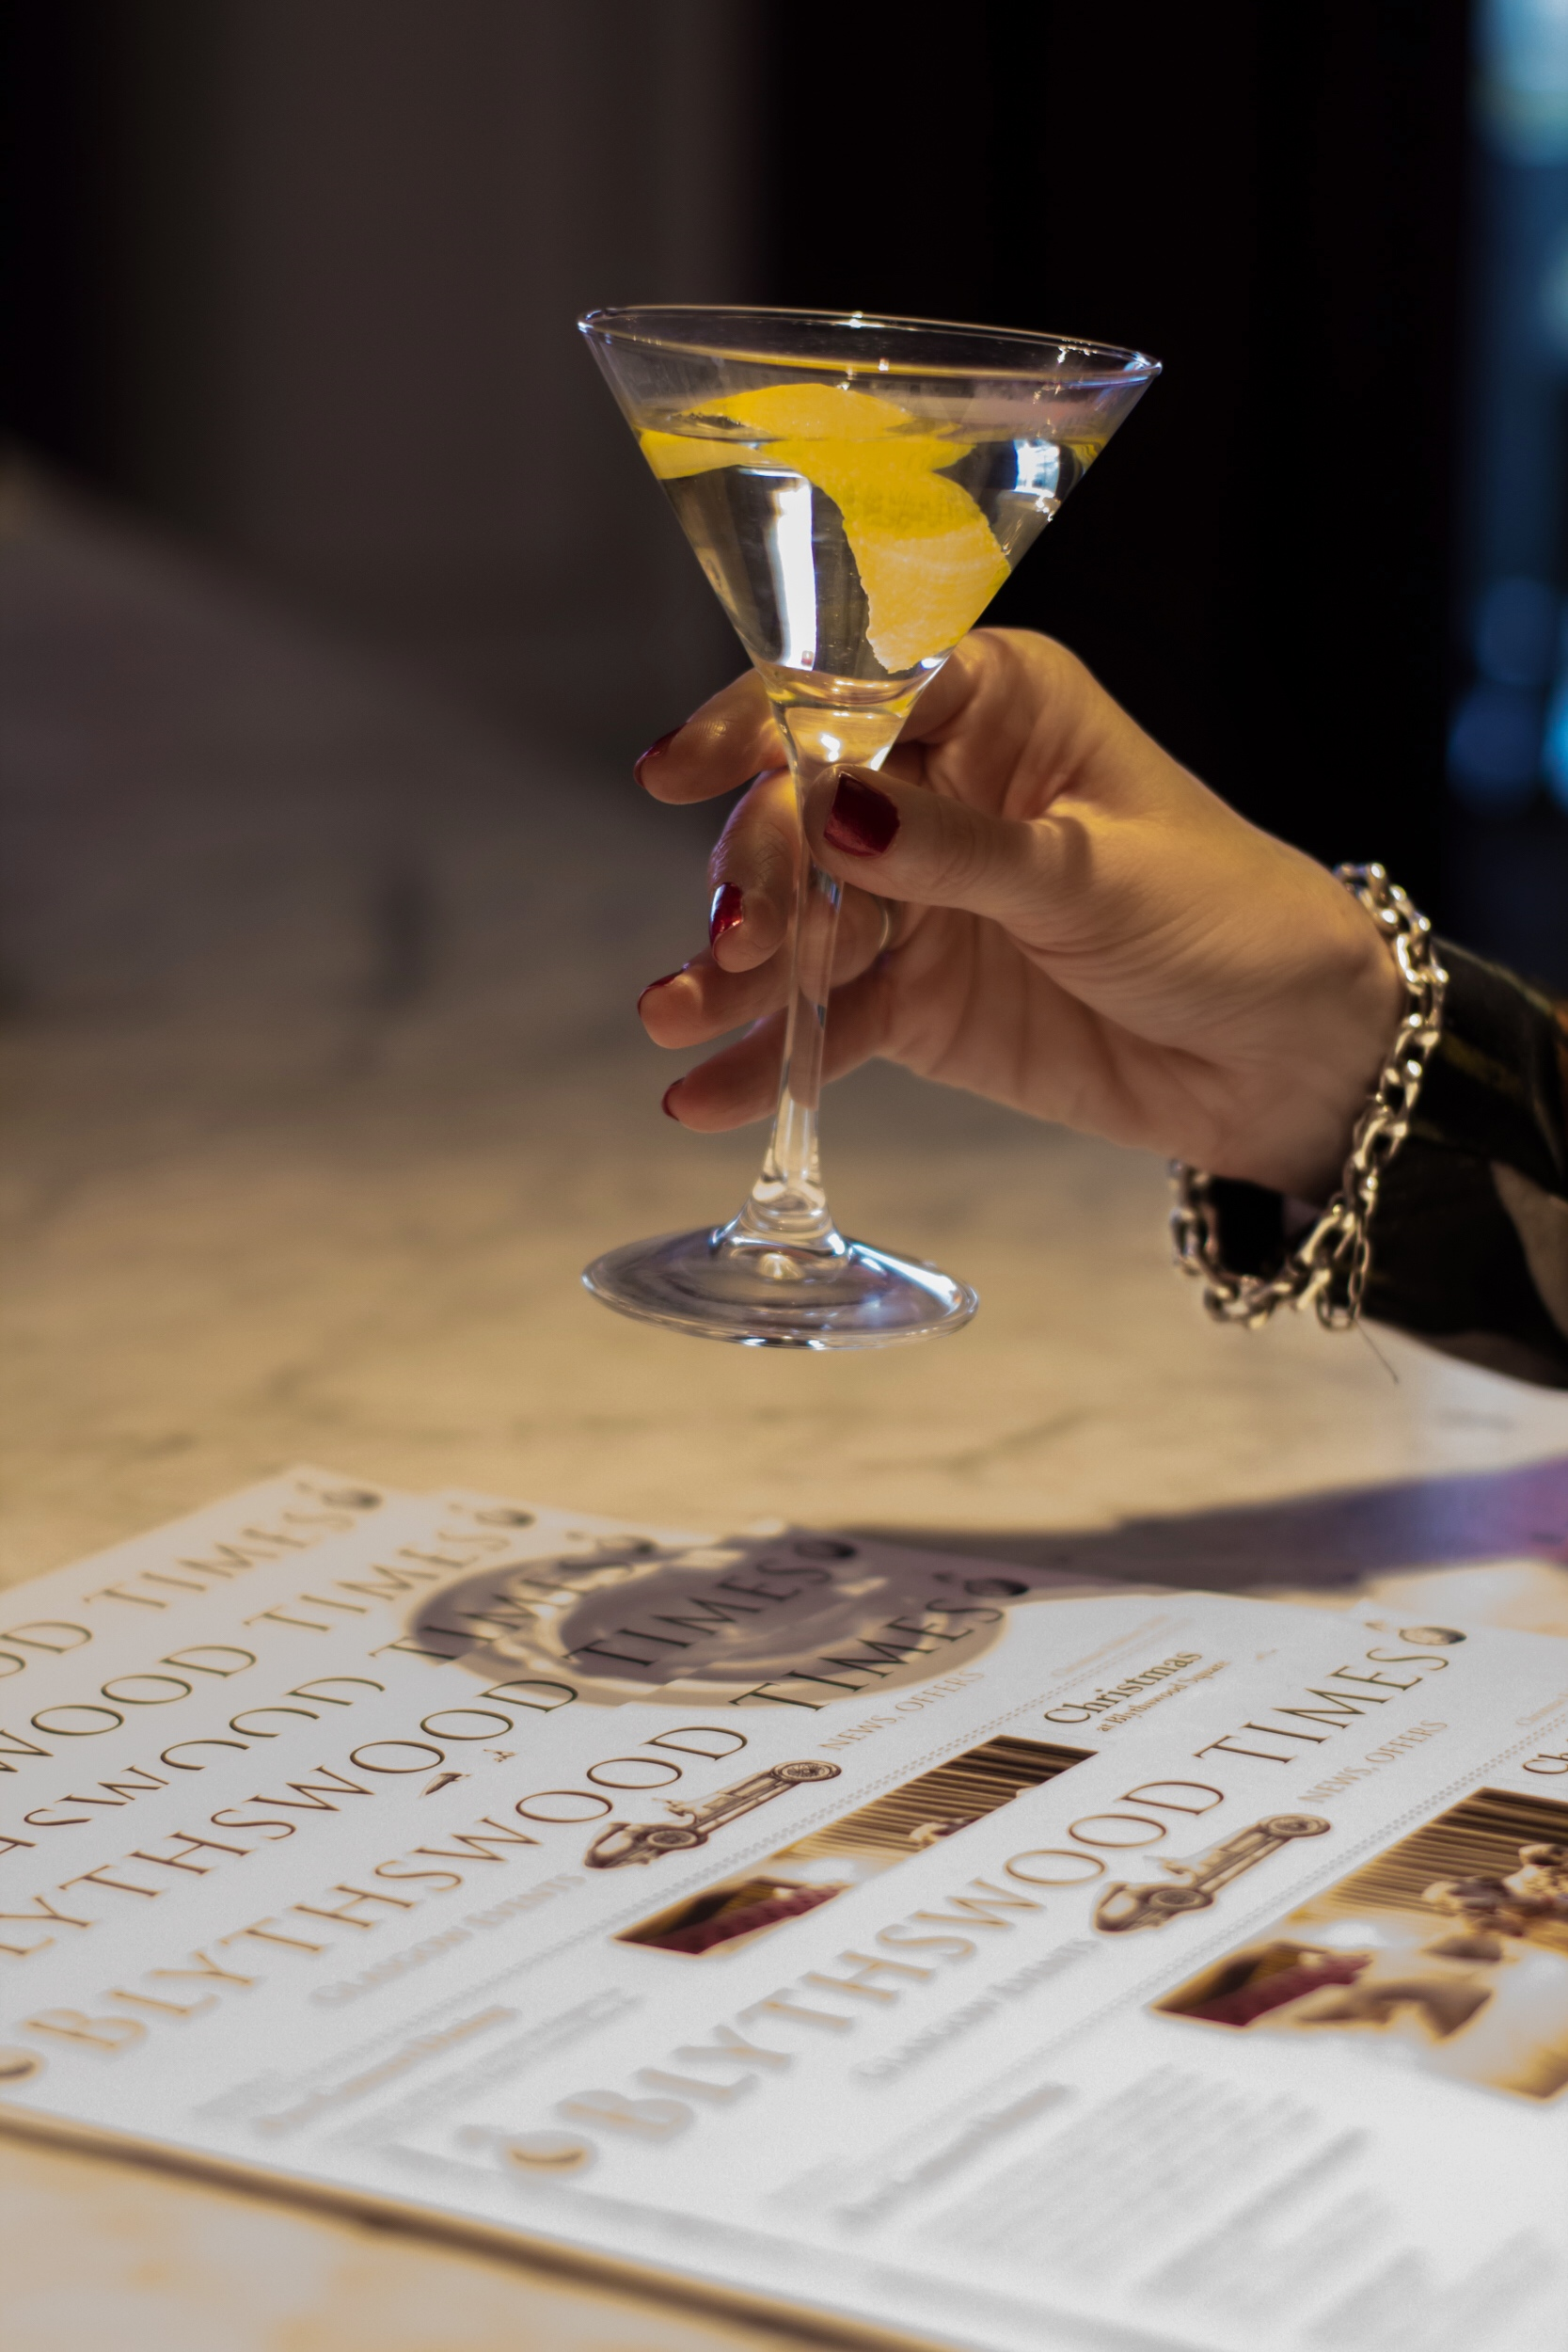 The Blythswood Hotel Salon  is a beautiful spot to browse the cocktail list or enjoy afternoon tea.